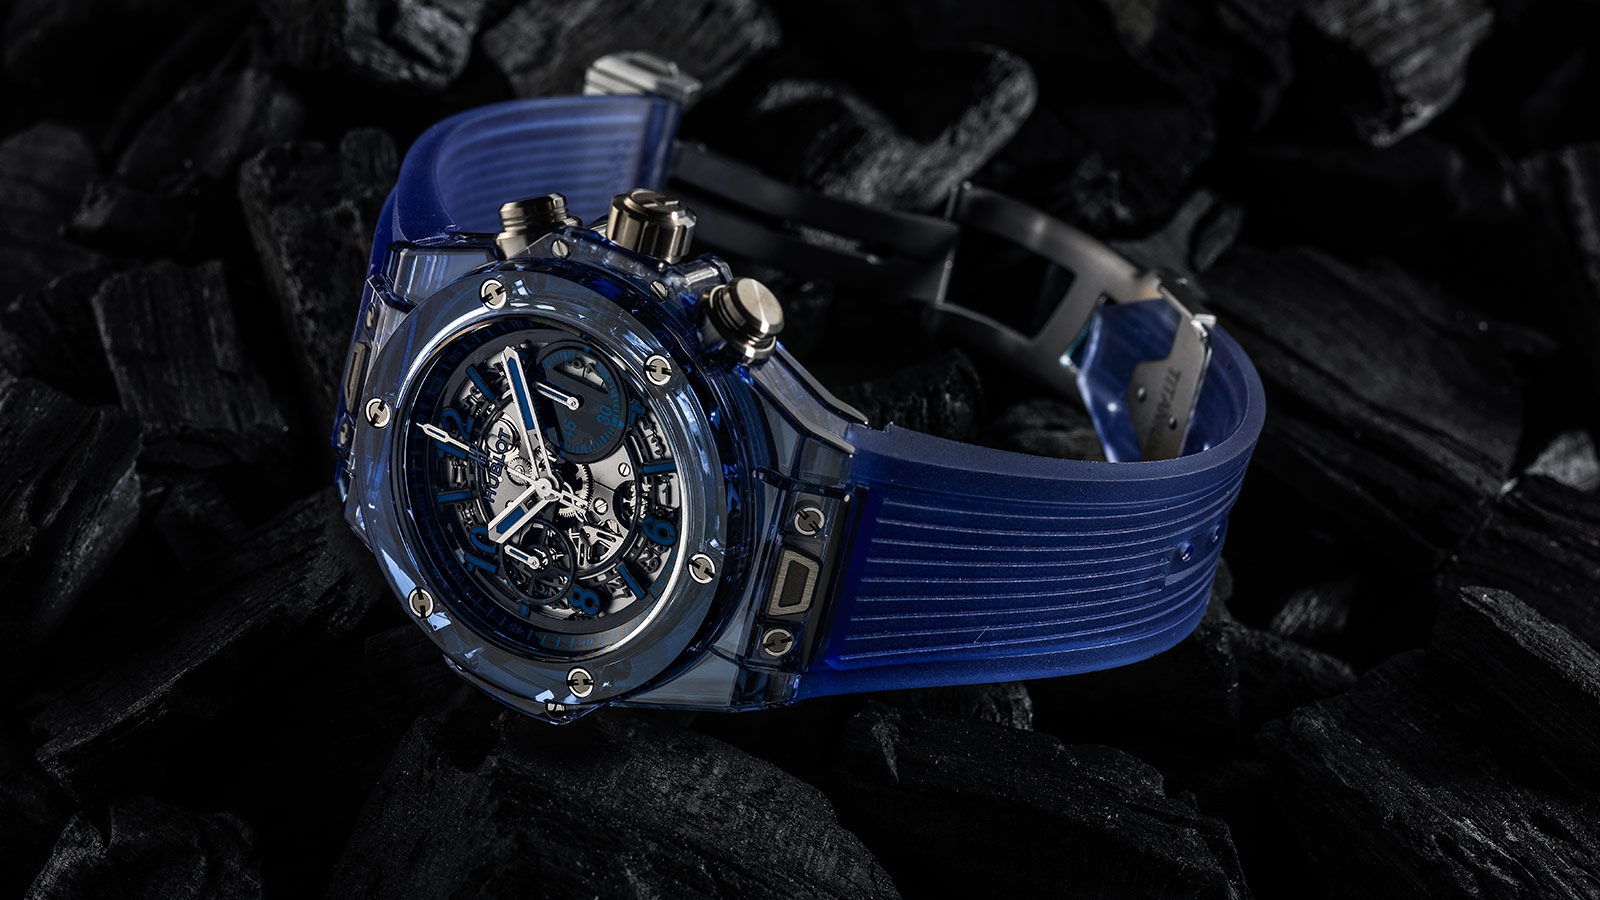 Big Bang Unico Sapphire Blue 411.JR.4901.RT Replik-Uhren